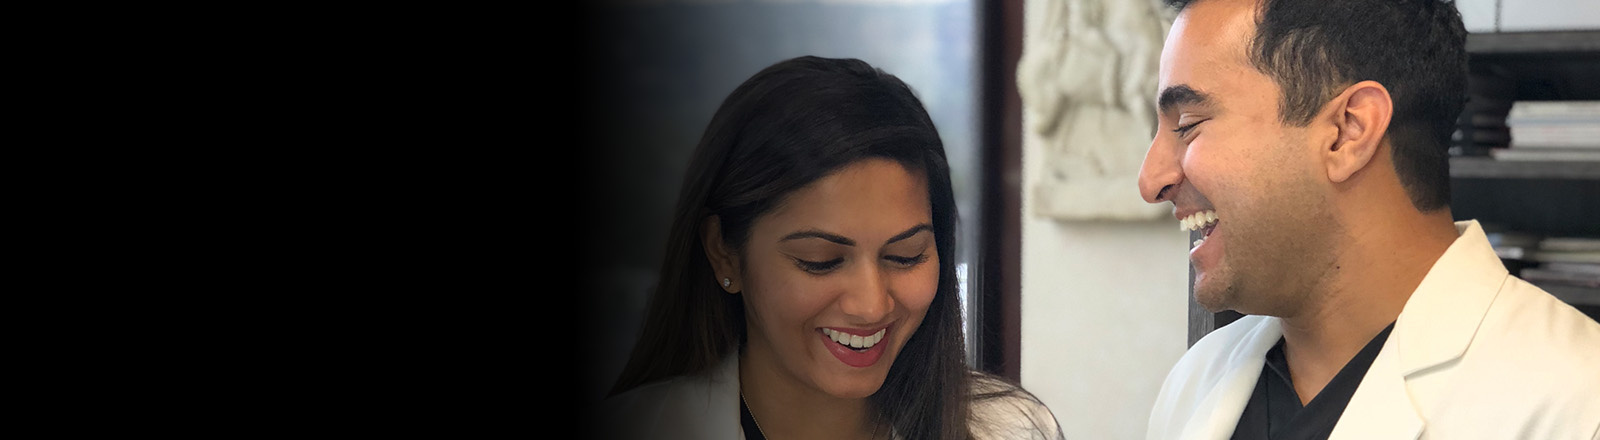 Dr. Puja Roy and Dr Deepak Dugar smiling